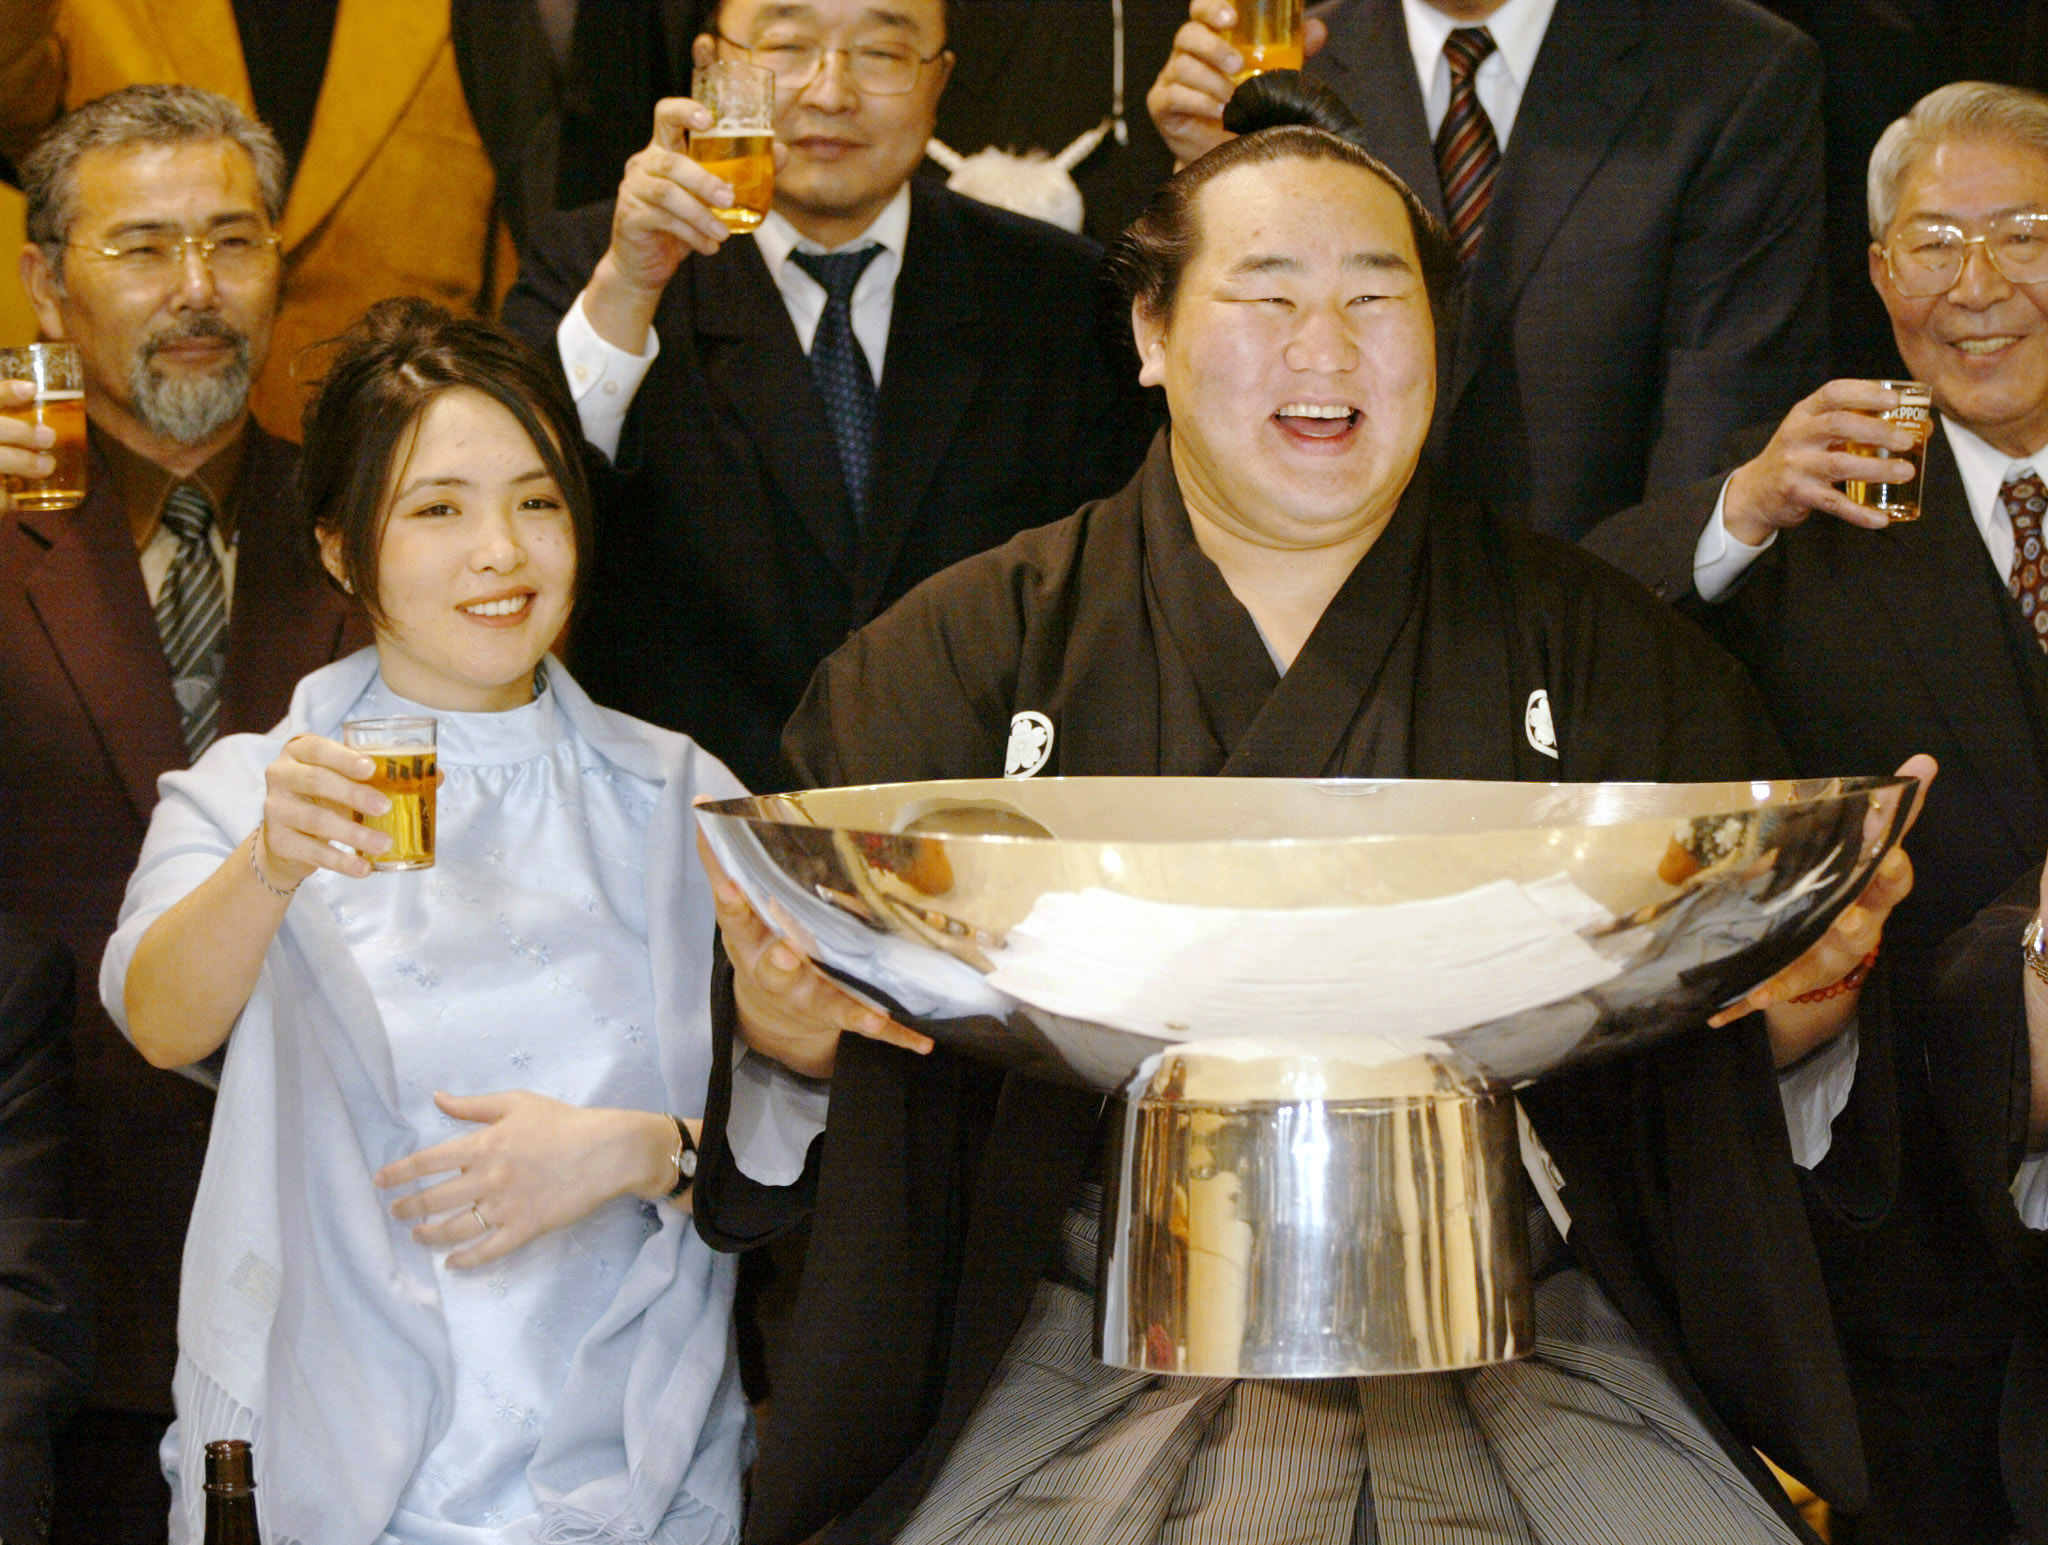 Mongolian sumo wrestler Asashoryu (R) holds a giant traditional Japanese cup containing sake as he is accompanied by his wife Gombotseren Tamir in a toast during a victory celebration in Tokyo January 26, 2003.